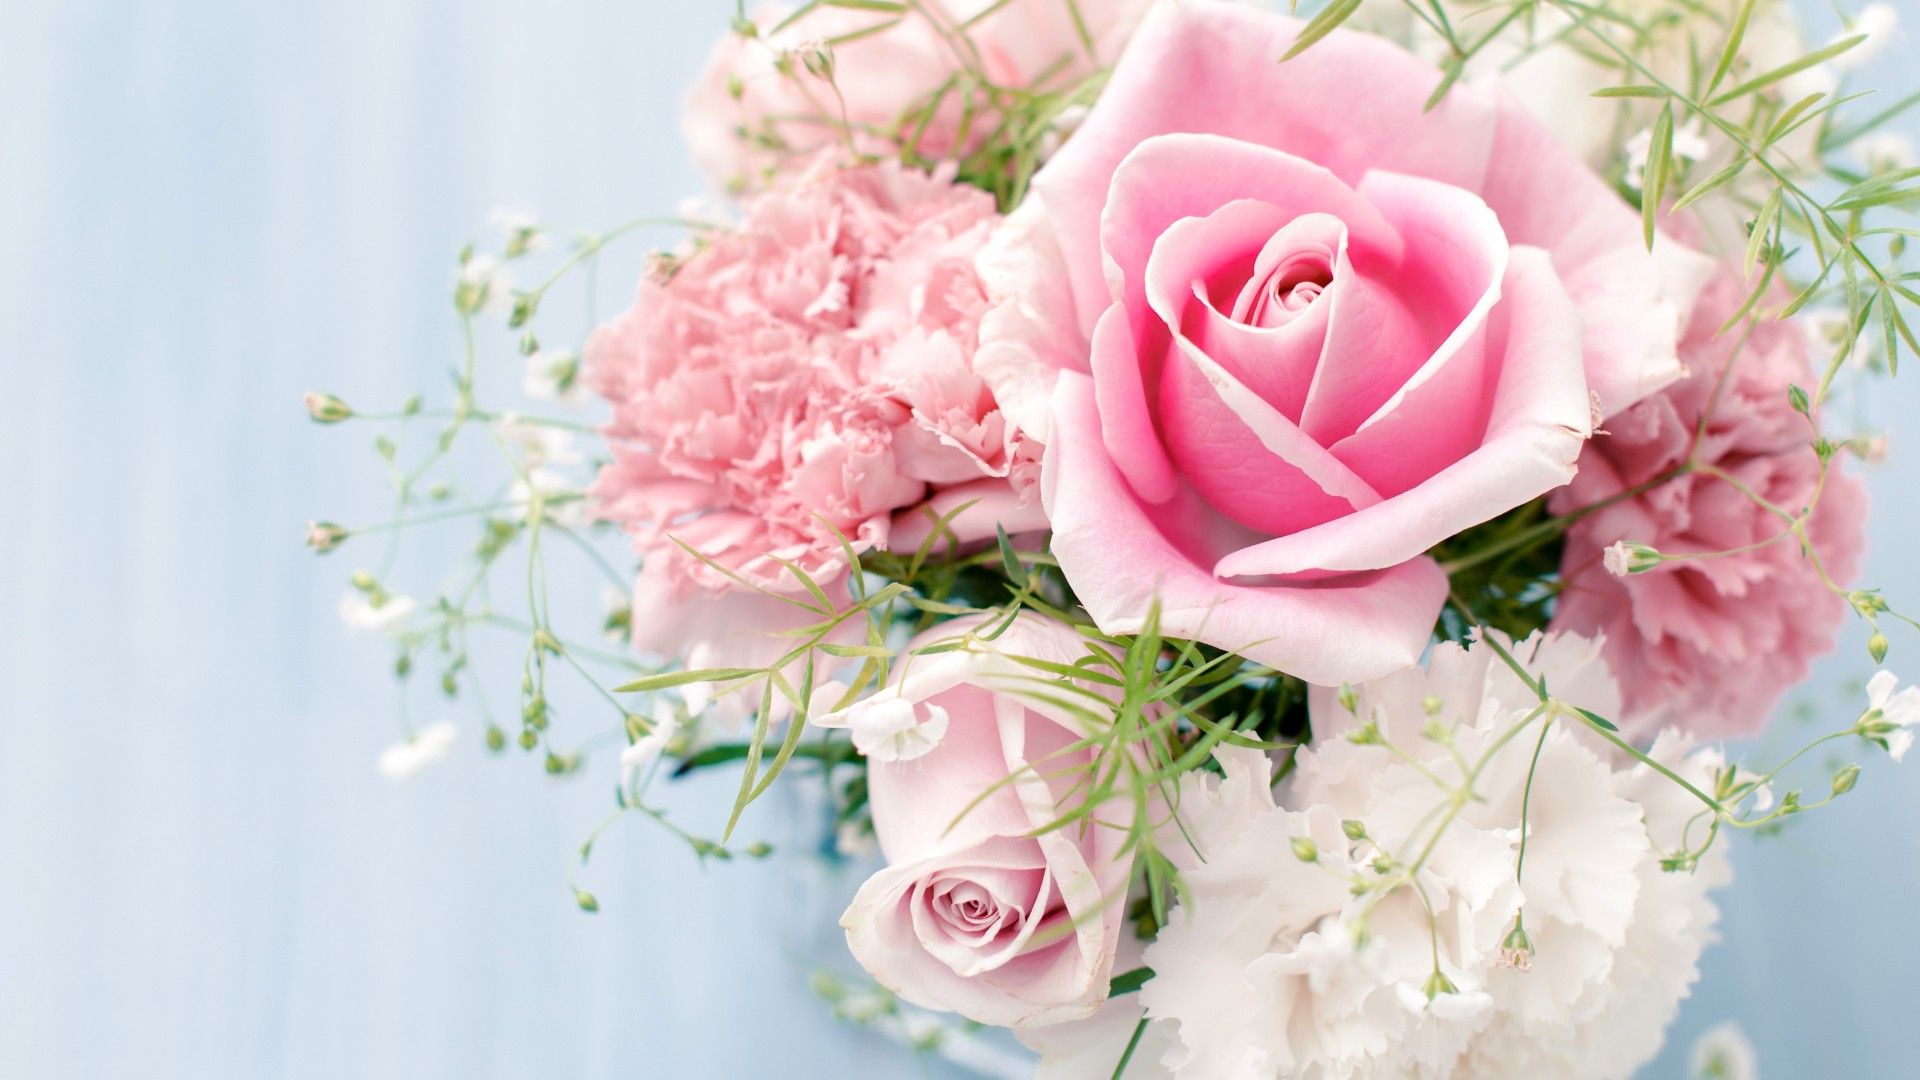 Flowers Images Roses Hd Wallpaper And Background Photos 34758604